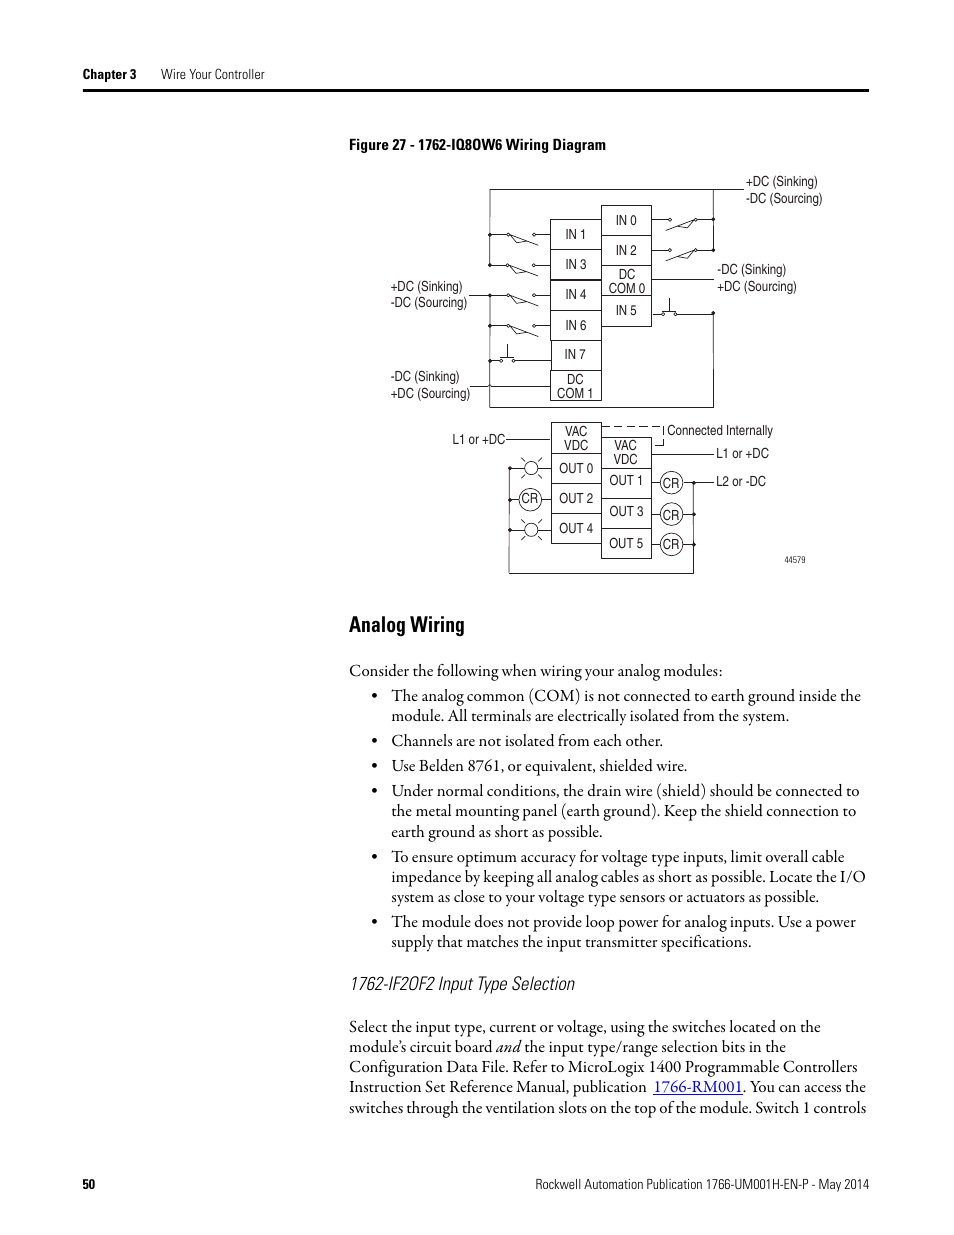 Analog Wiring 1762 If2of2 Input Type Selection Rockwell Automation 1766 Lxxxx Micrologix 1400 Programmable Controllers User Manual User Manual Page 64 406